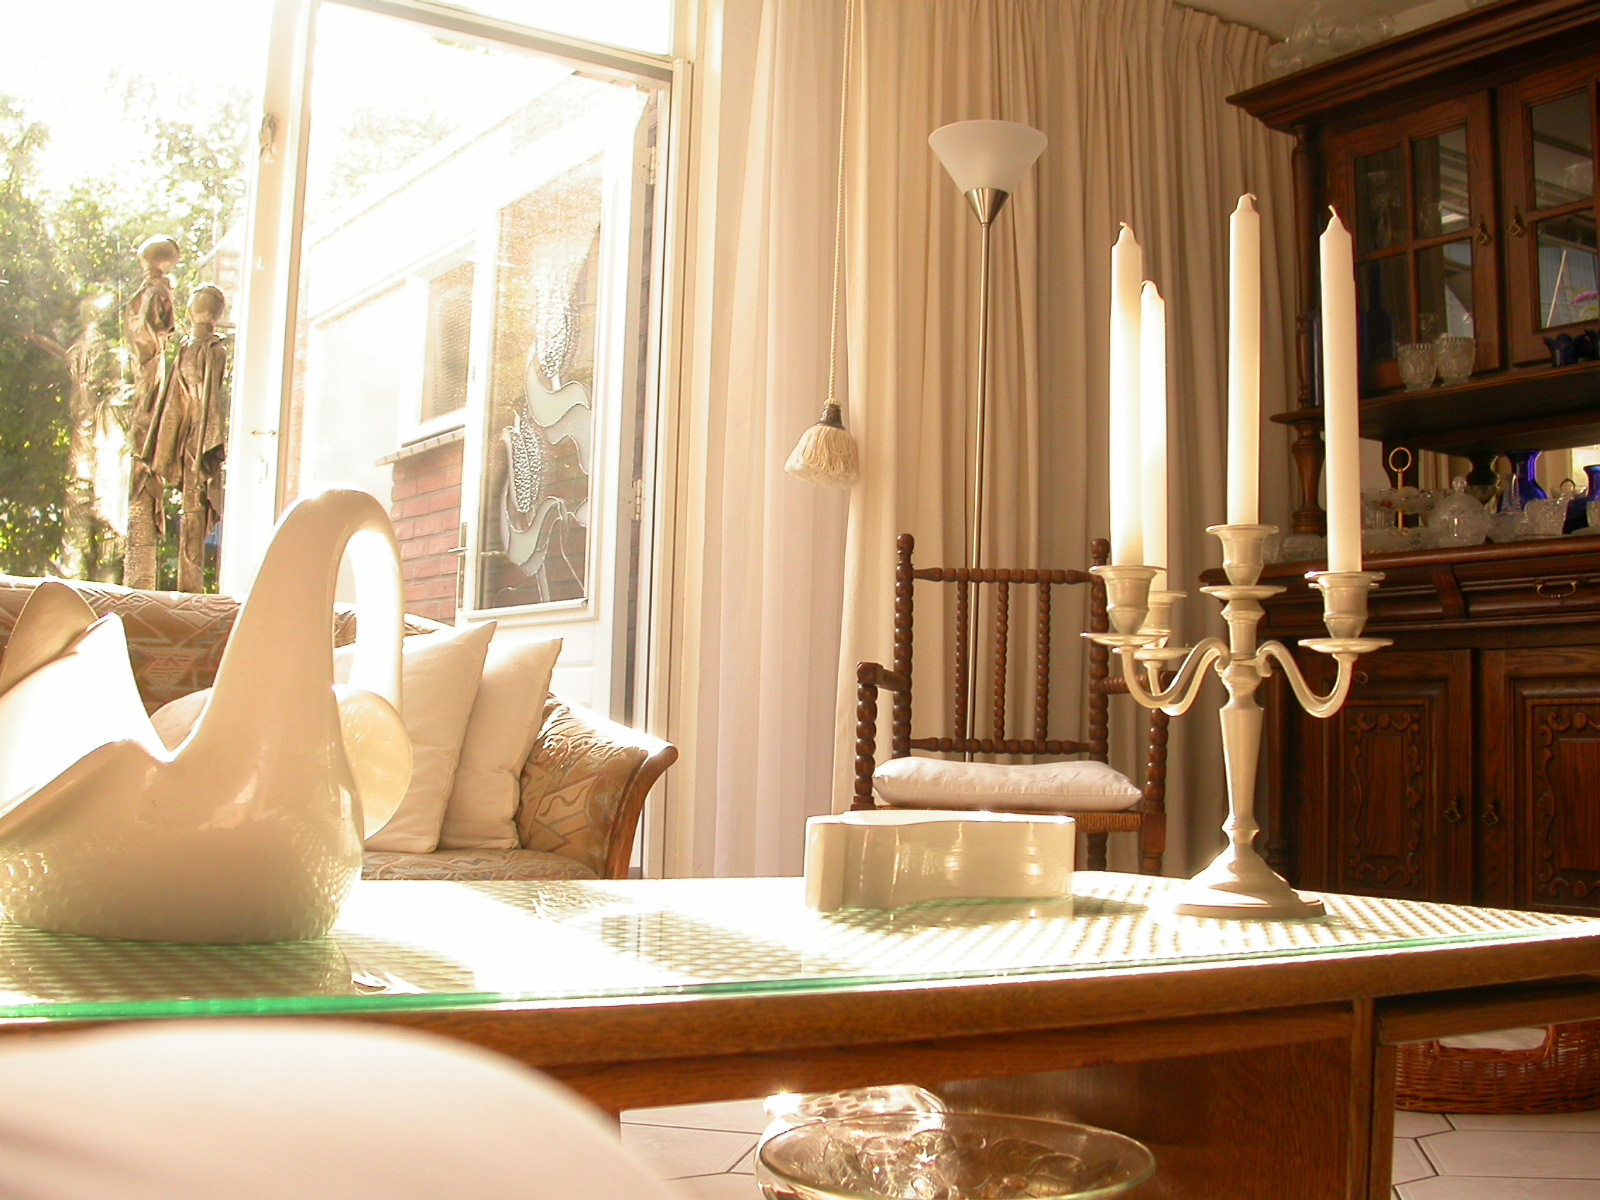 eva living room beautifully lit by sun warmth candles peace relaxation